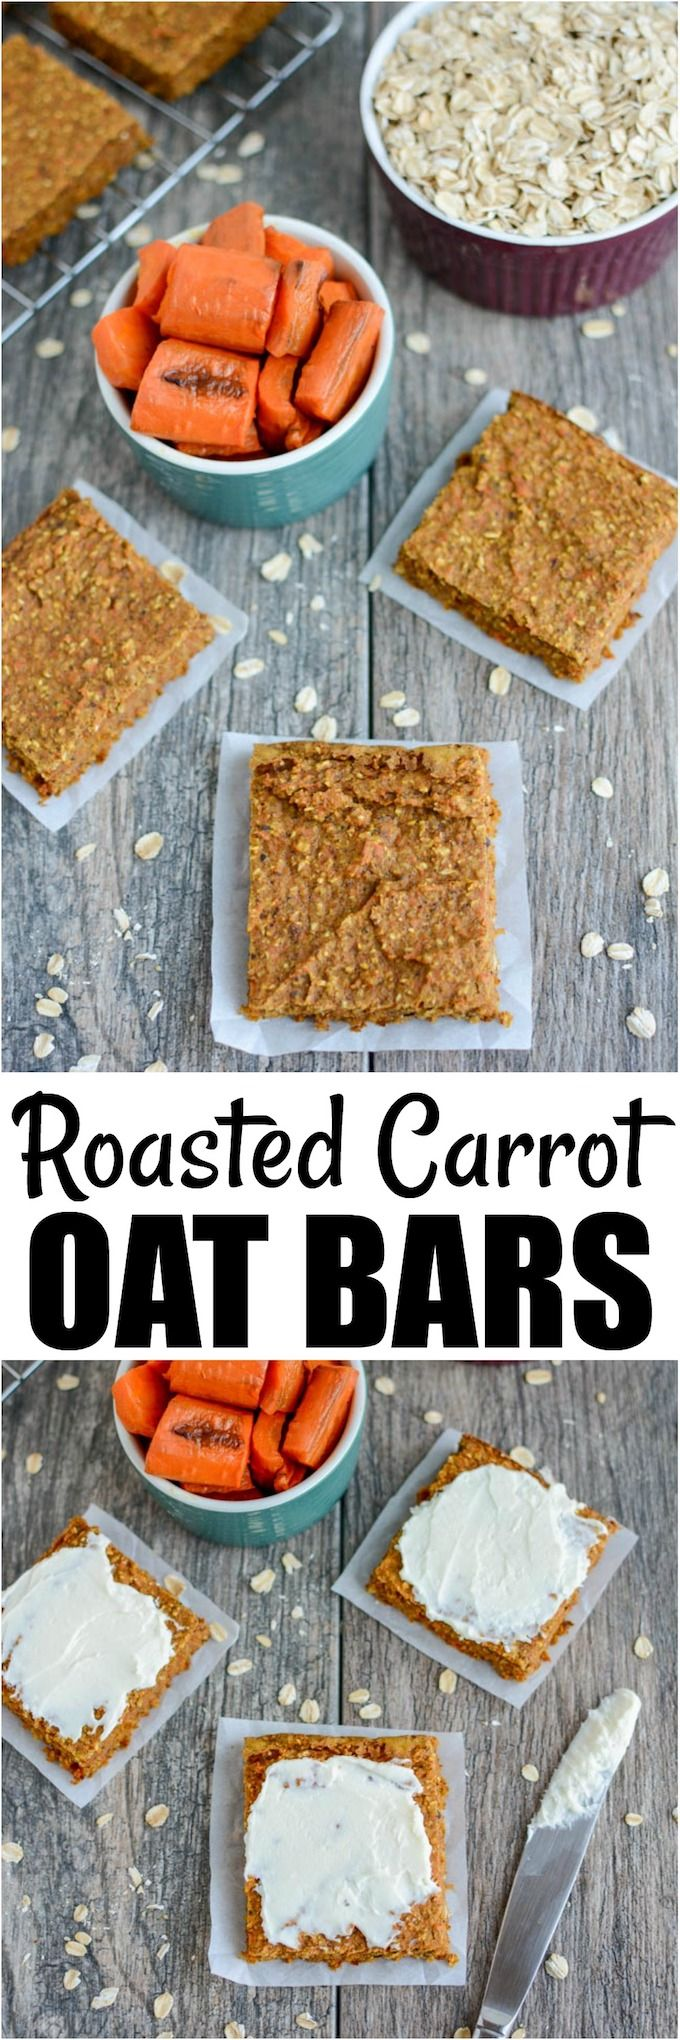 These Carrot Oat Bars make the perfect healthy snack. They're dense, chewy and easy to make in the blender. Plus they're kid-friendly and also make a great addition to breakfasts and lunches. via @lclivingston